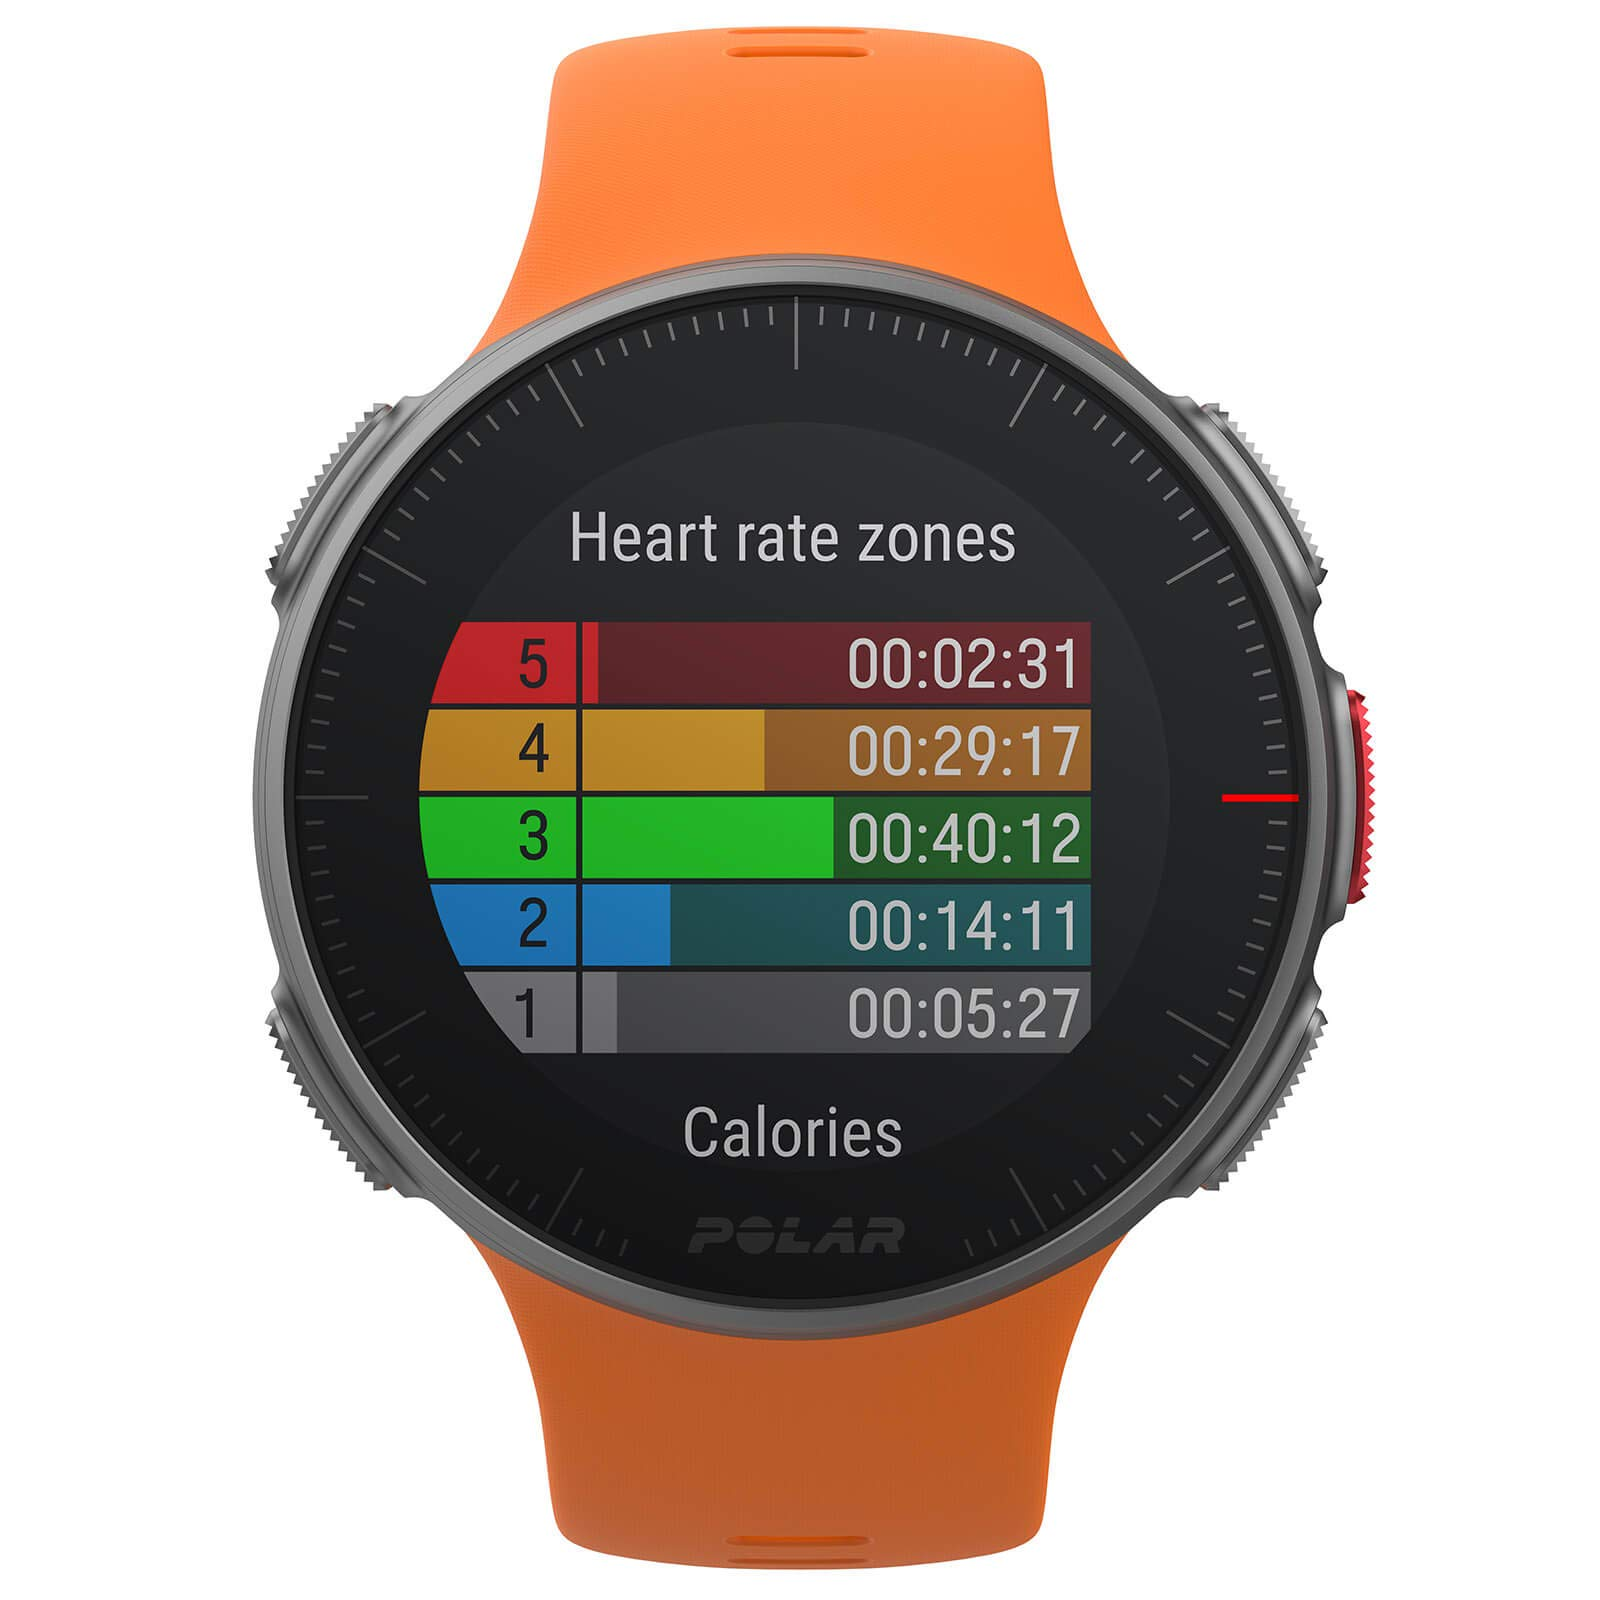 PlayBetter Polar Vantage V Pro Multisport Watch (Orange) Power Bundle Portable Charger & Screen Protectors | GPS & Barometer | Heart Rate by PlayBetter (Image #4)